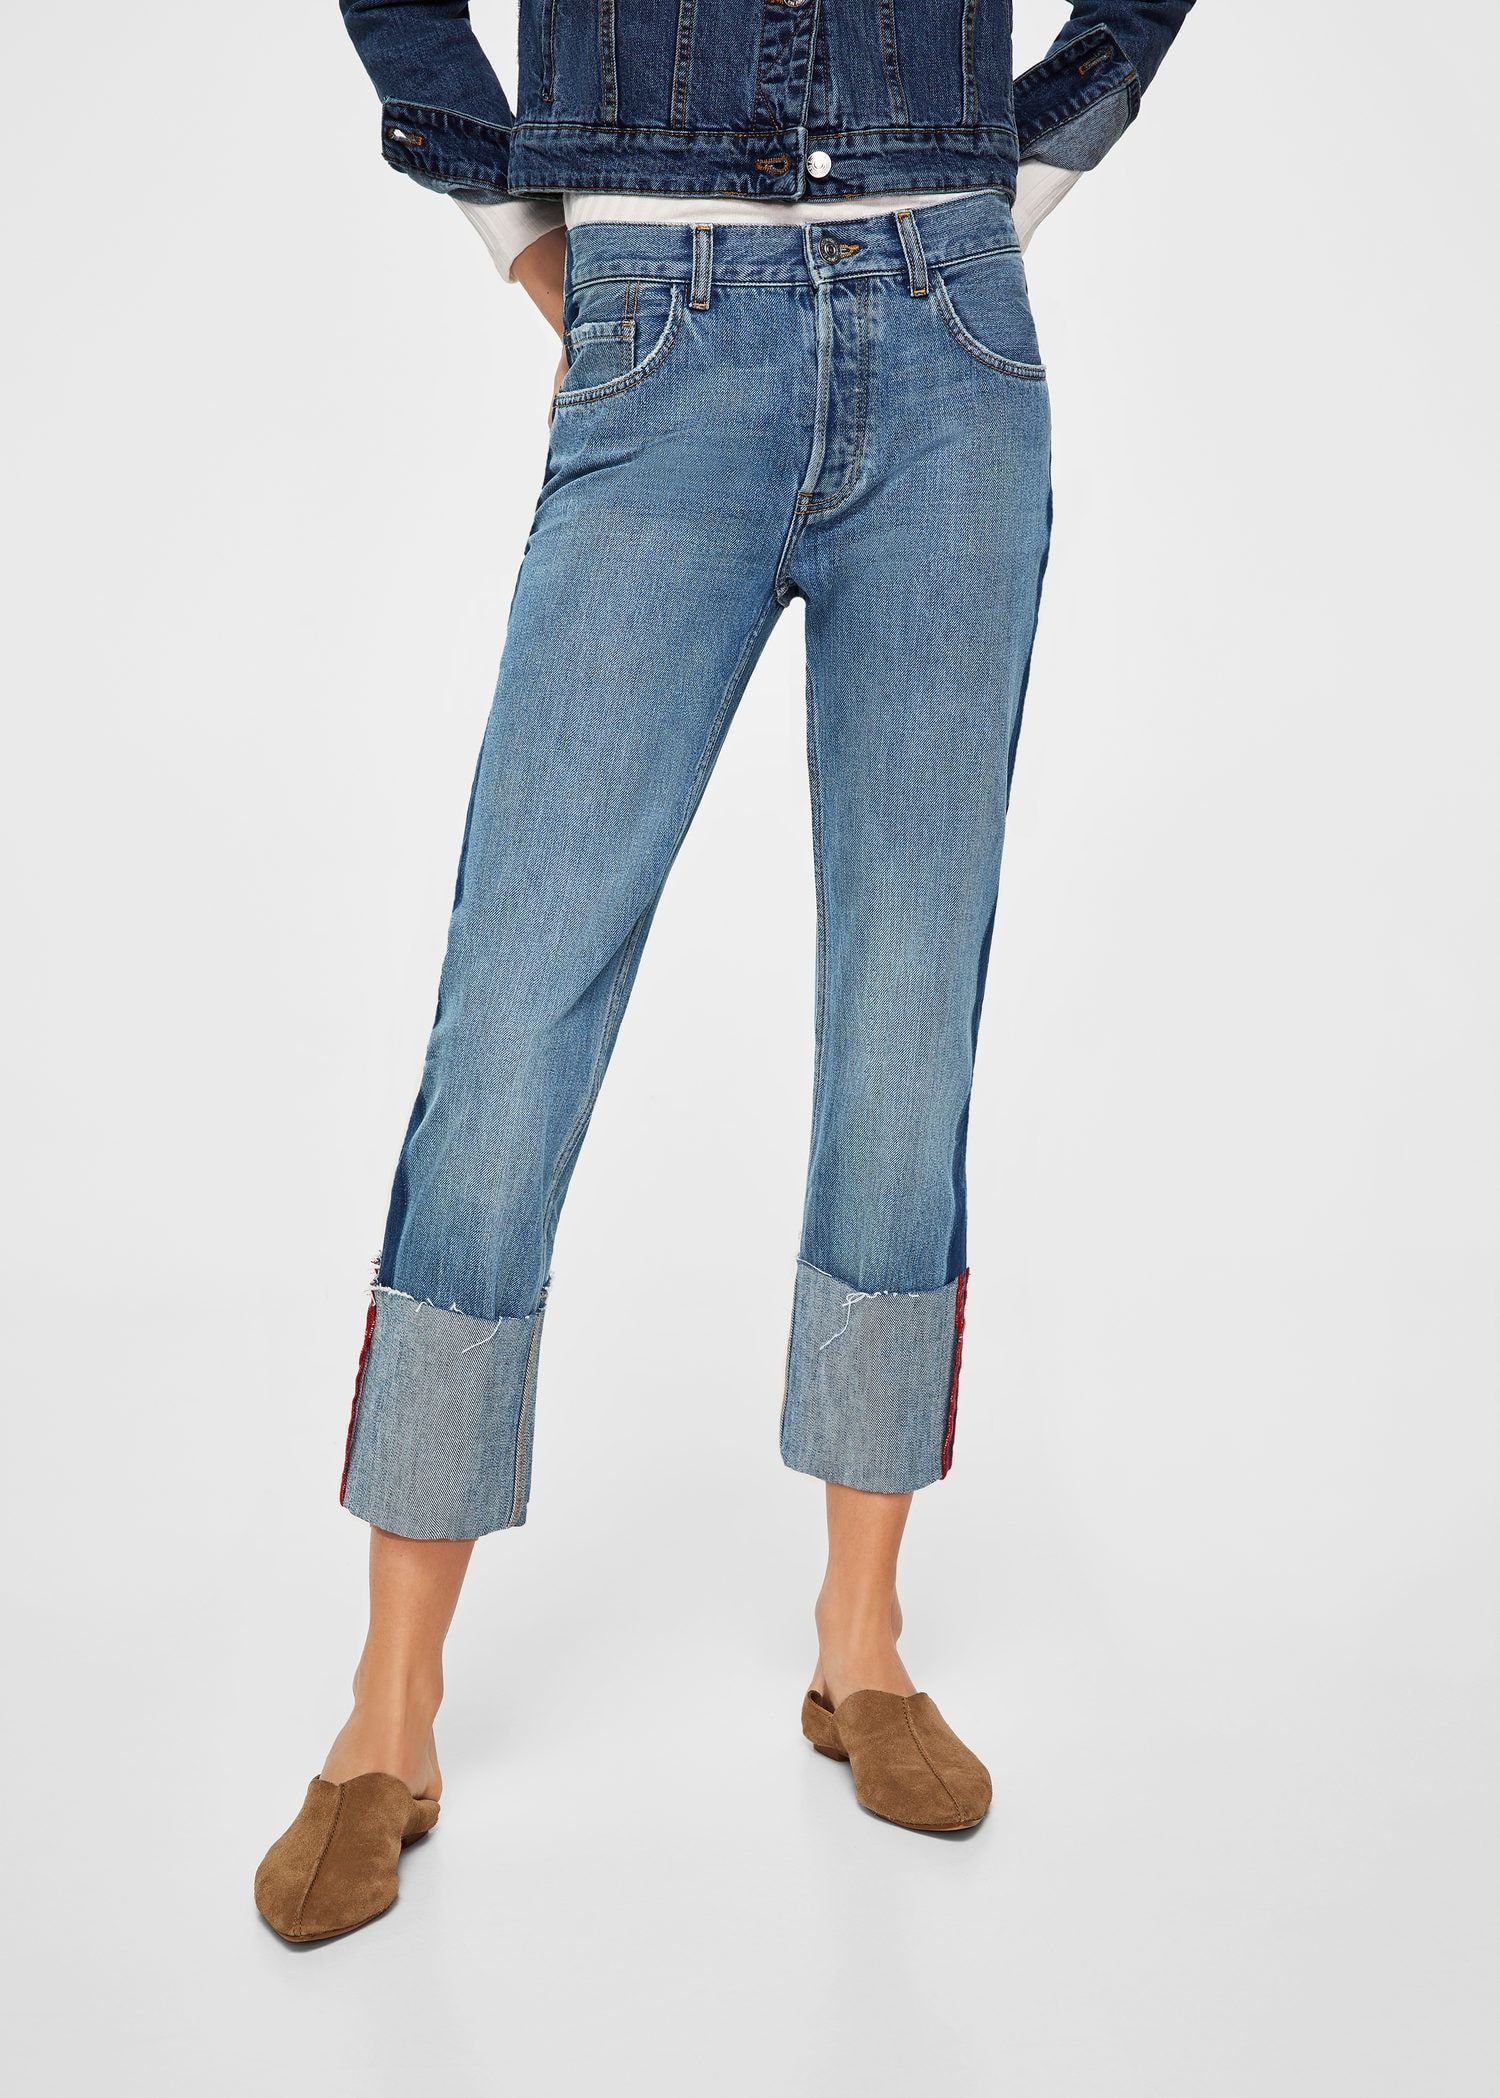 96cce01386 Turn-up hem straight jeans - Women | Fall/Winter 18' | Jeans, Cuffed ...